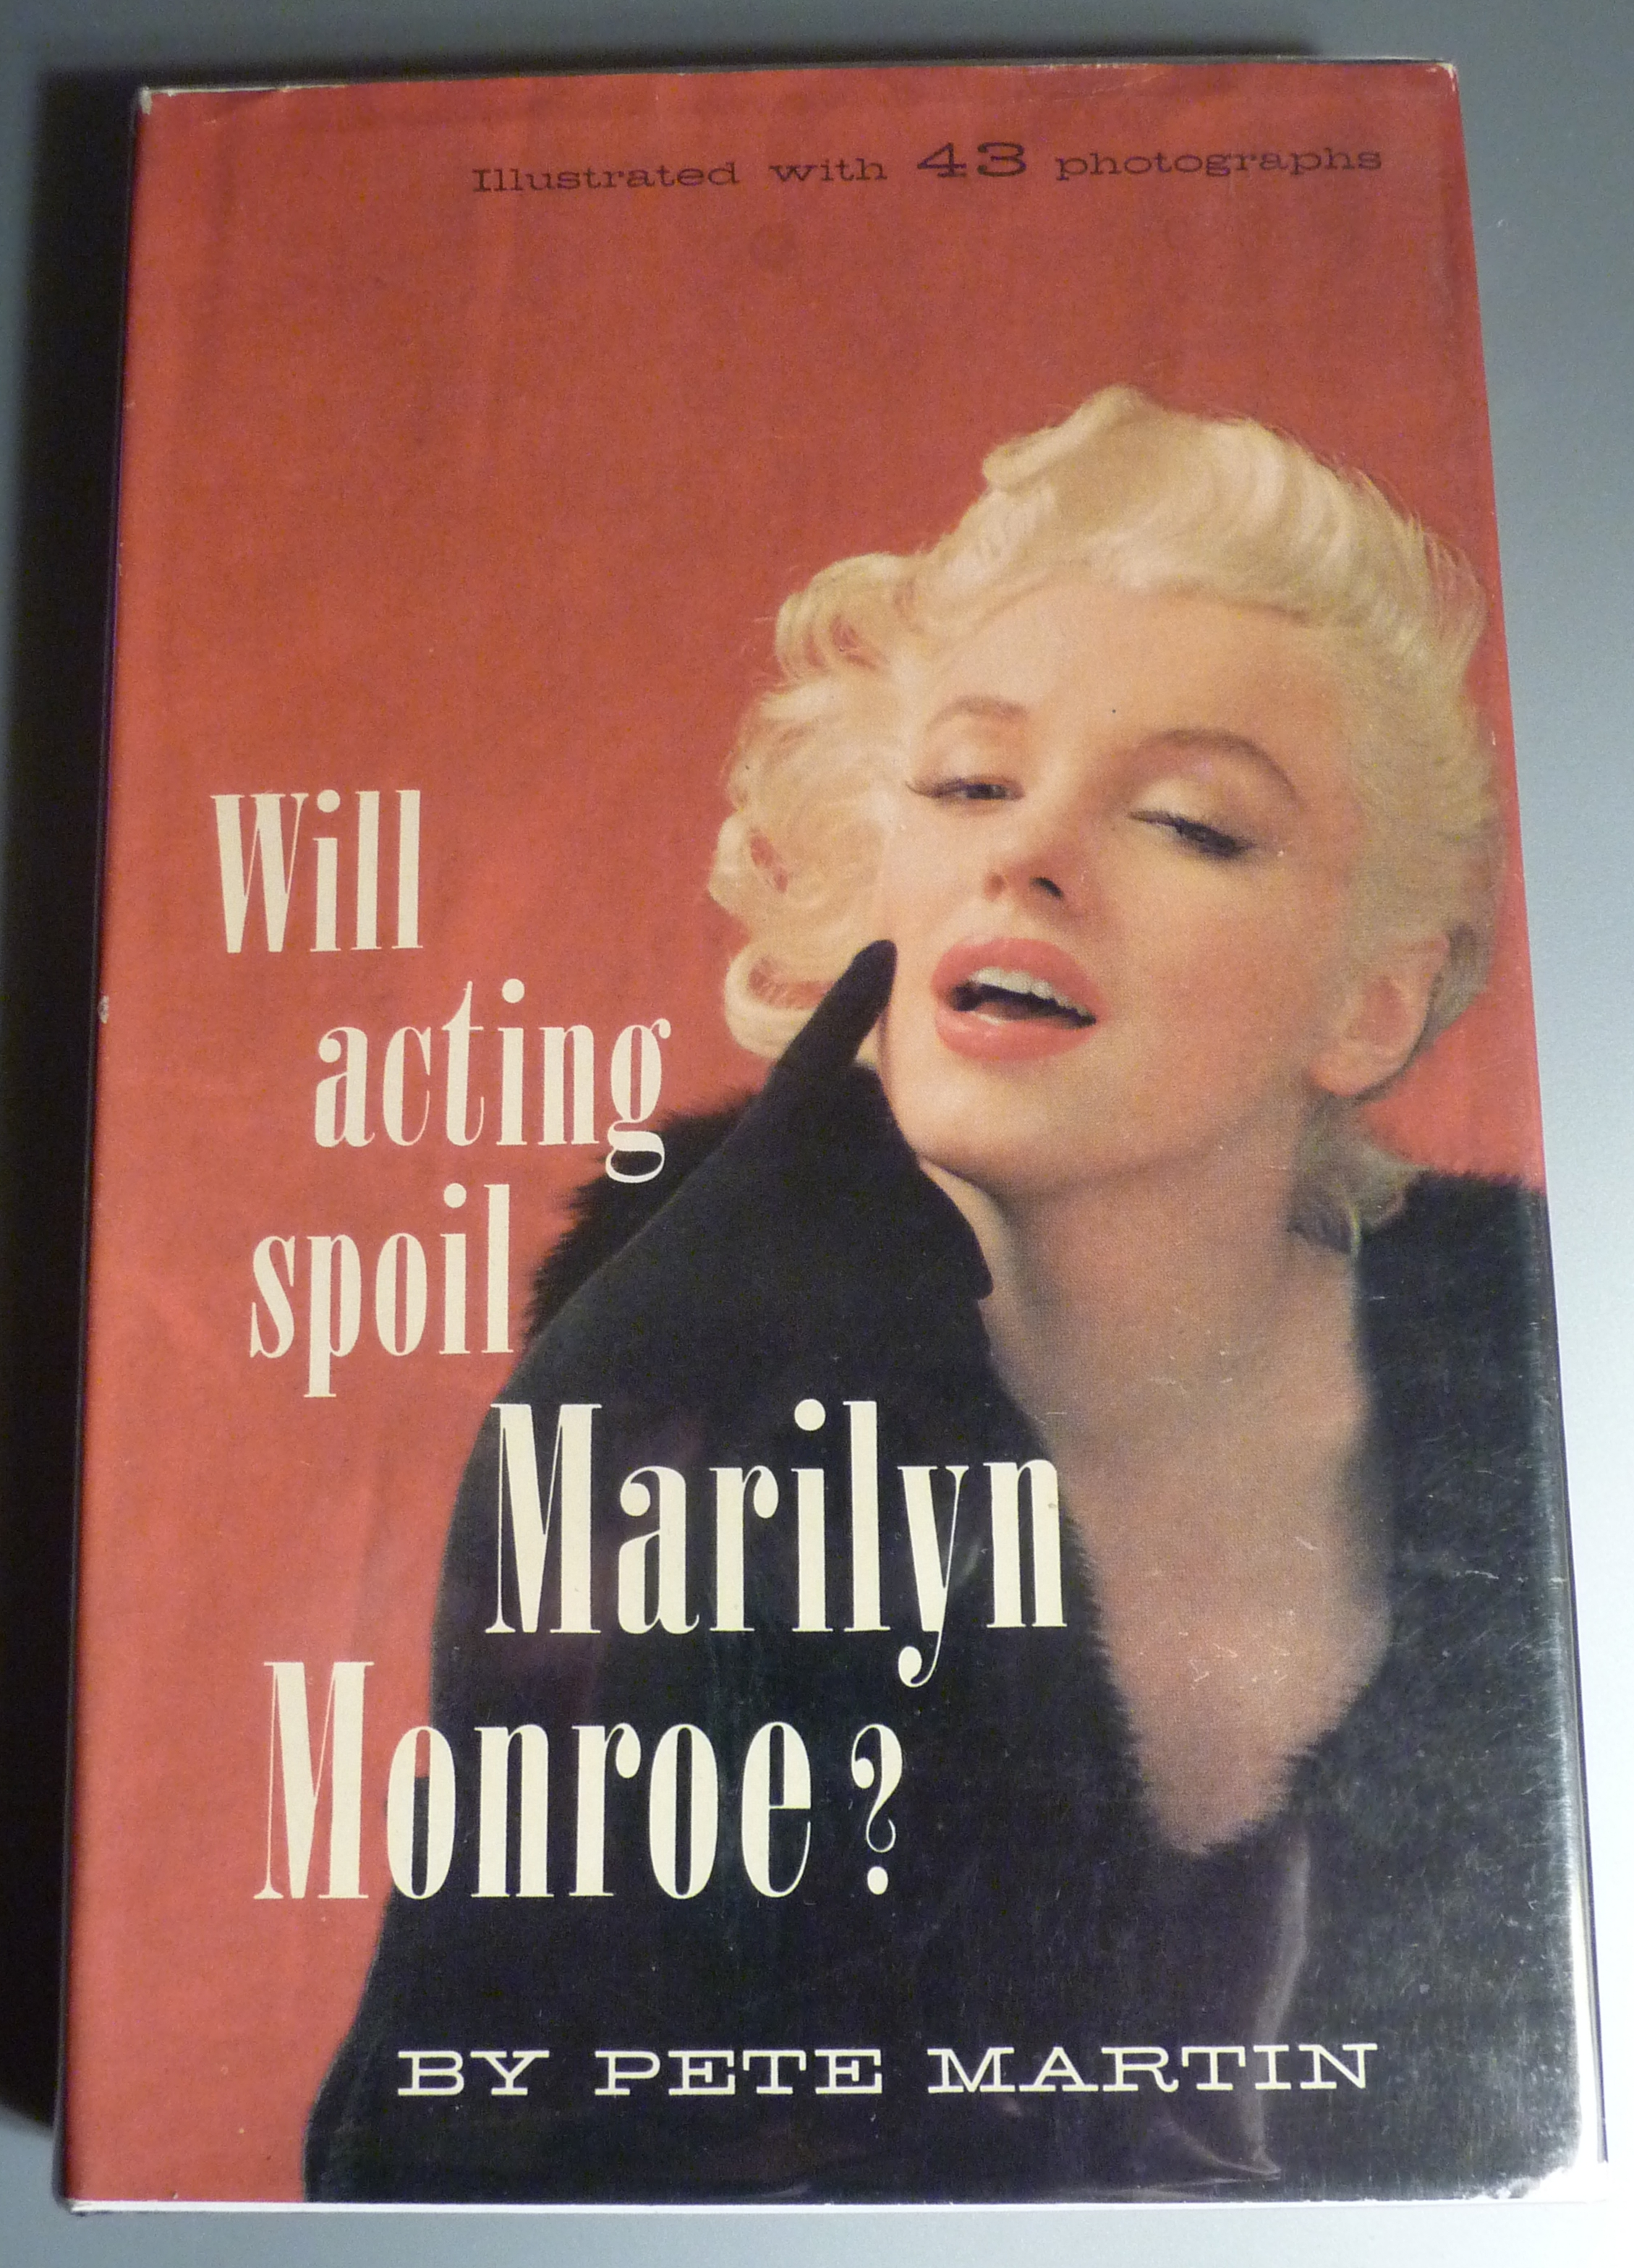 marilyn monroe essay Andy warhol, gold marilyn monroe analysis essay the gold marilyn monroe painting is a religious painting her face is depicted as a religious icon.